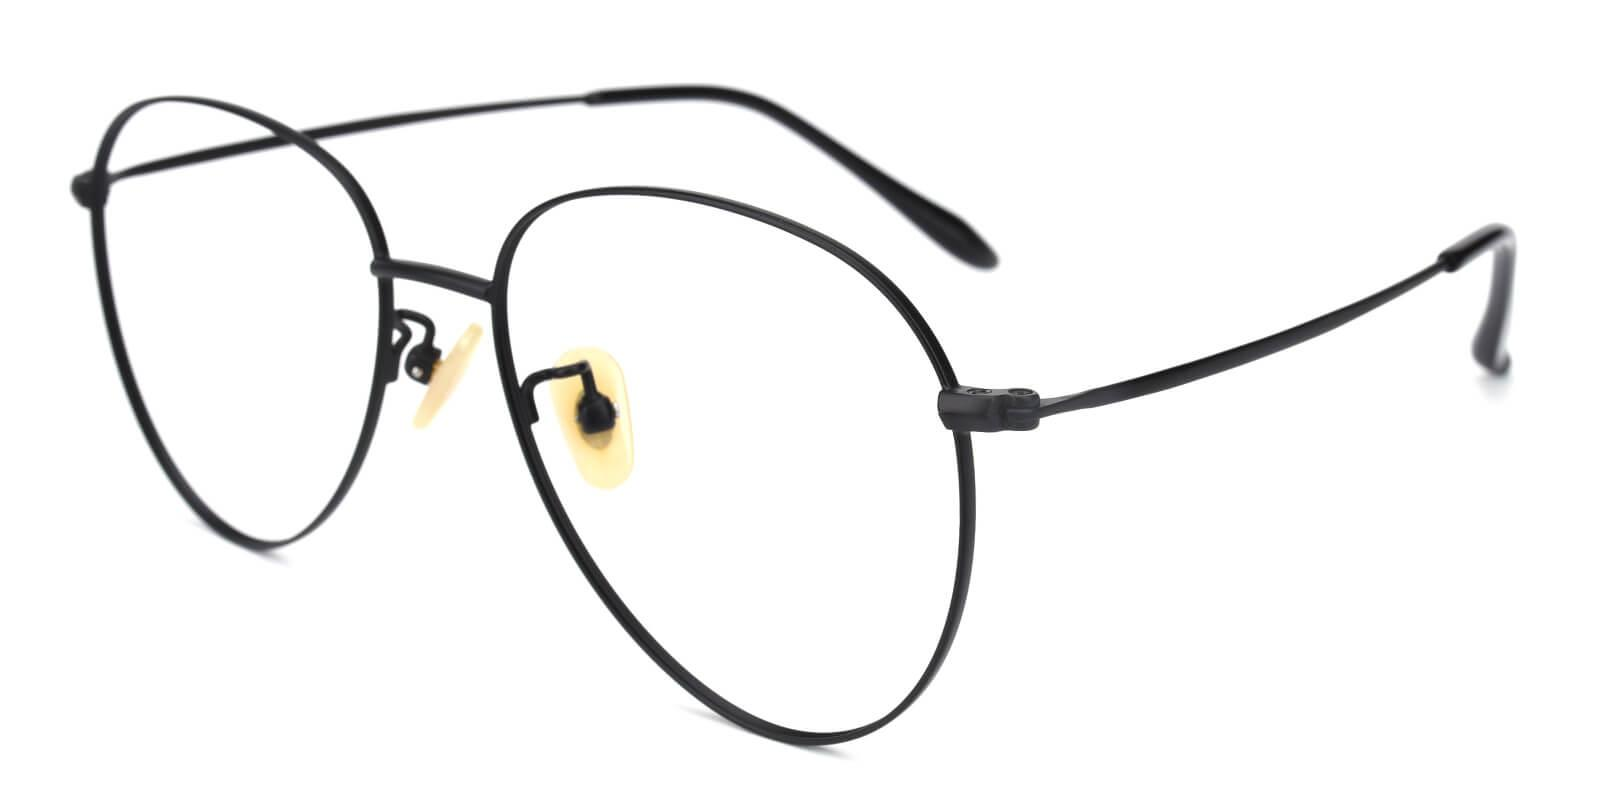 Epilogue-Black-Round-Titanium-Eyeglasses-detail